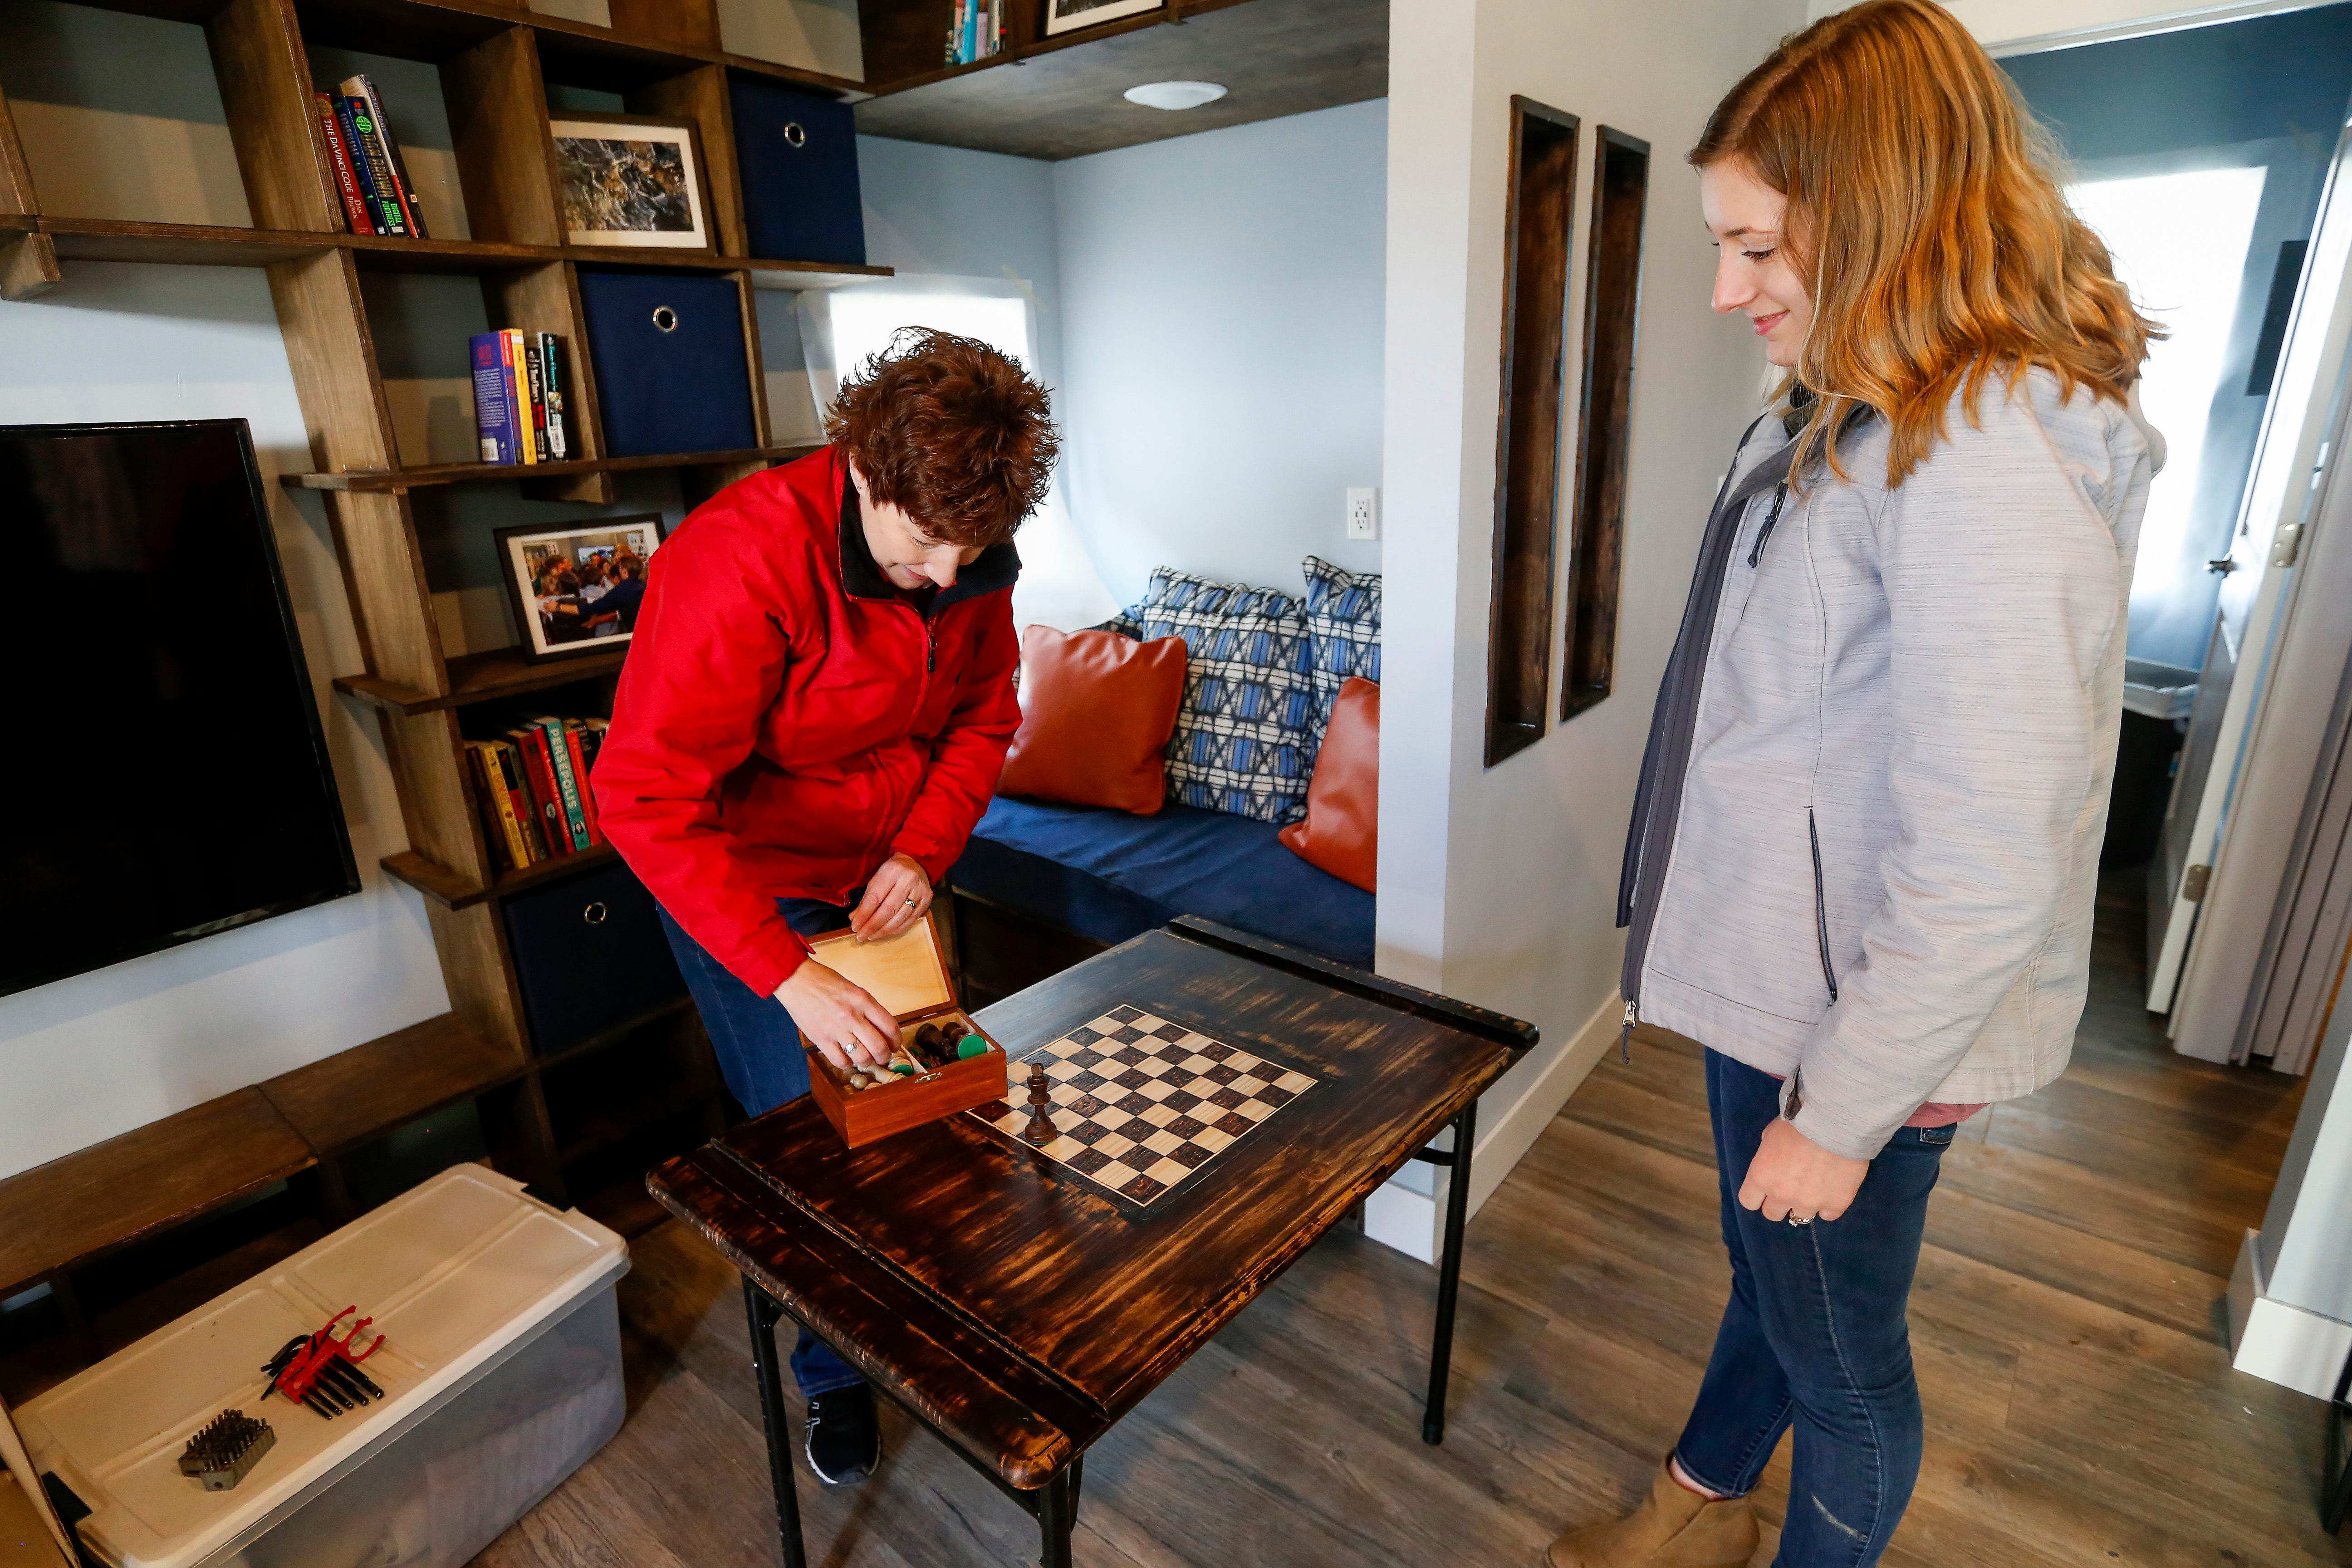 Professor Traci Sooter, left, and student Meagan Ley, of Drury, set up the table with a chess board in M.J.'s home at Eden Village on Monday, Dec. 17, 2018.